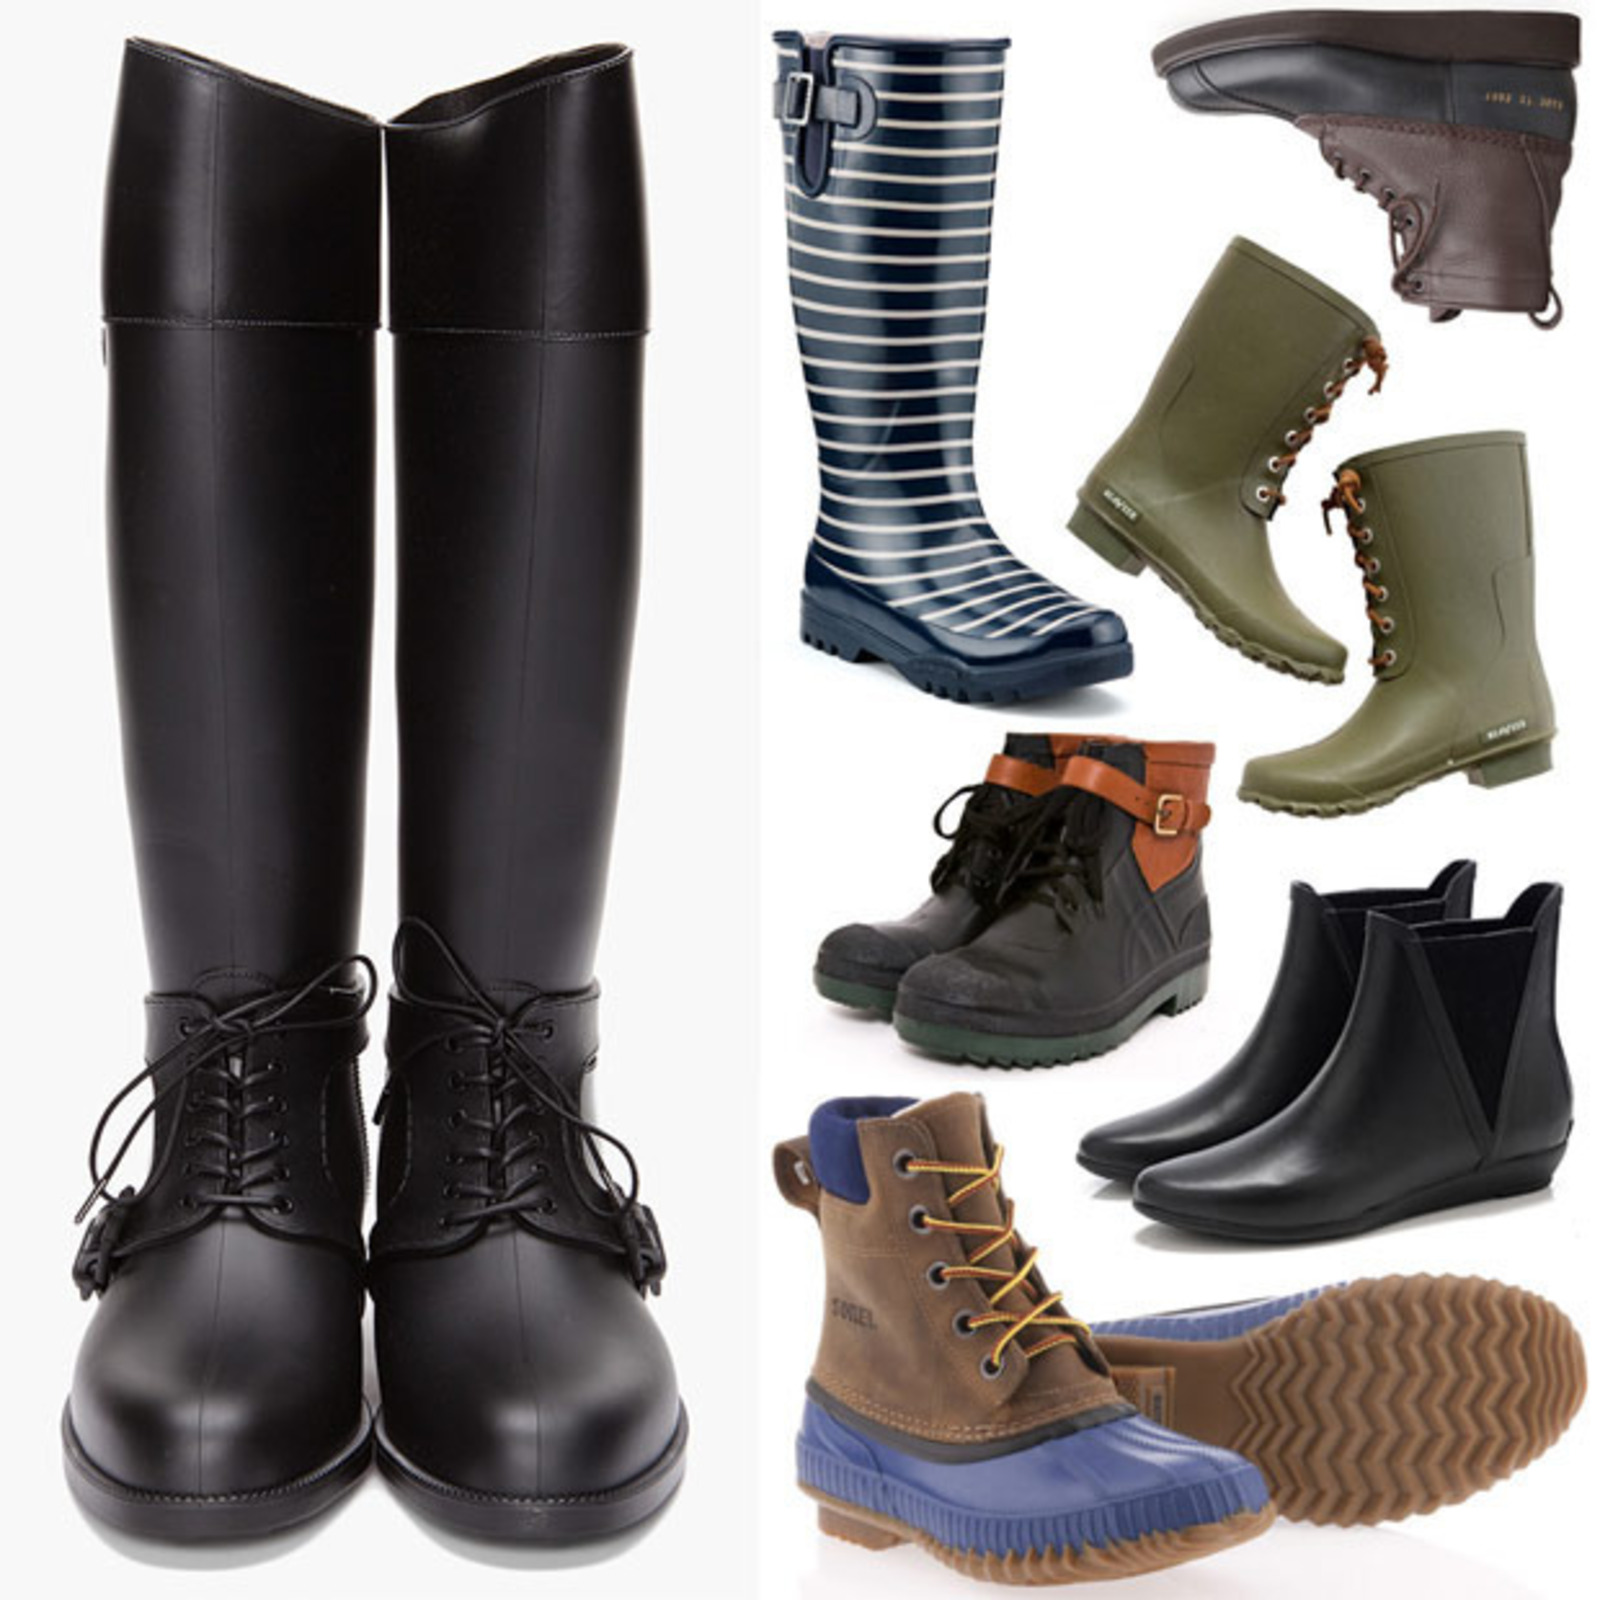 Twelve Pairs of Ladies' Rain Boots - Cool Hunting